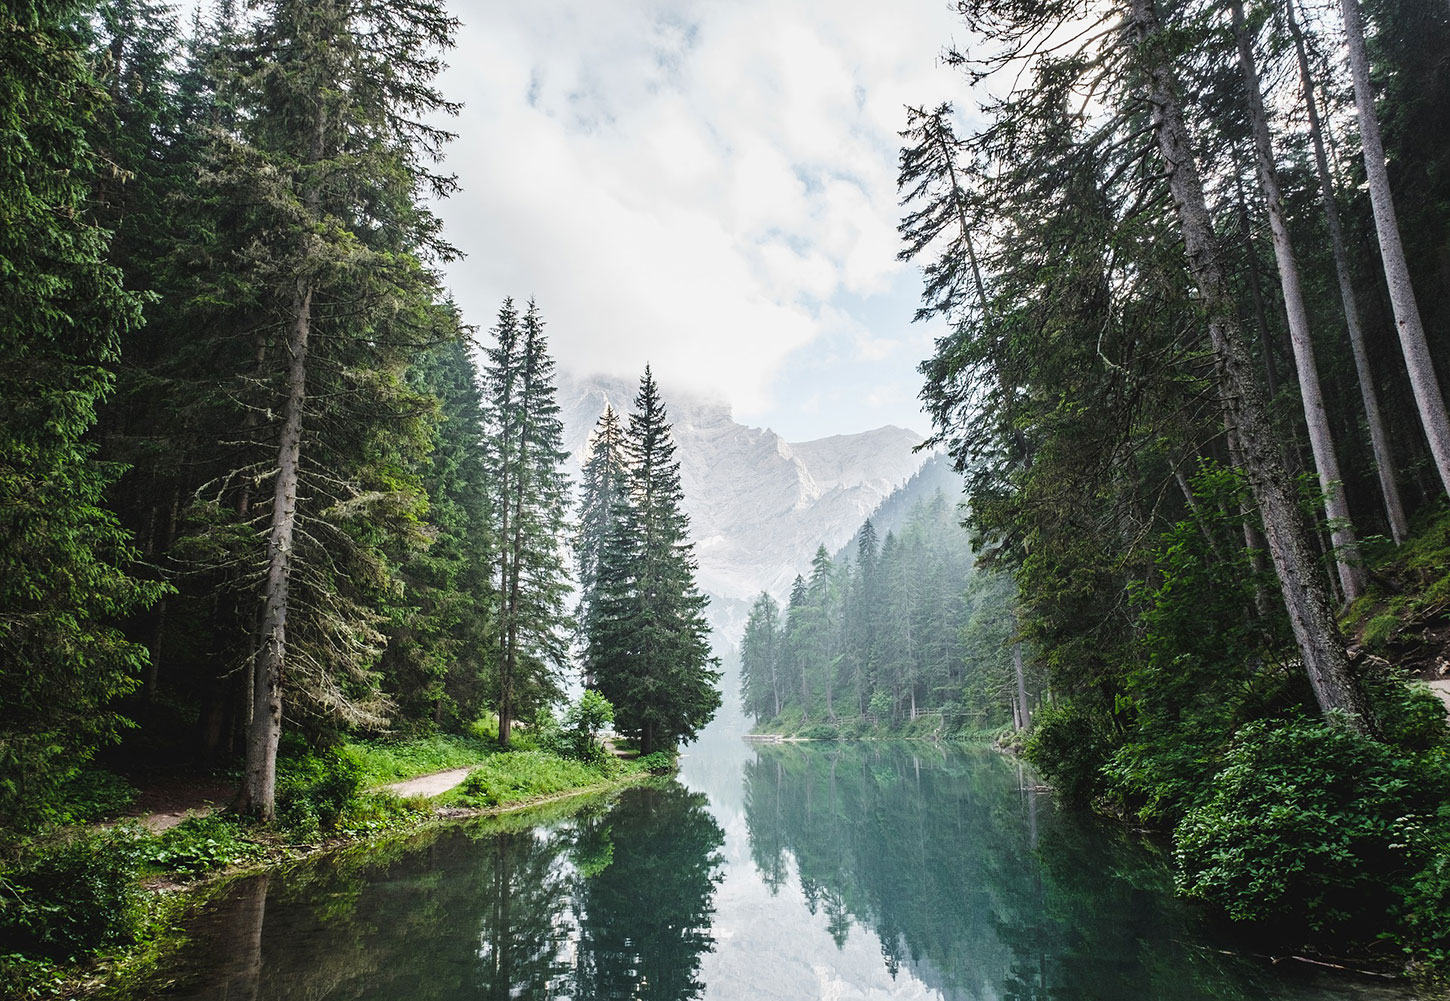 River, forest, and mountain